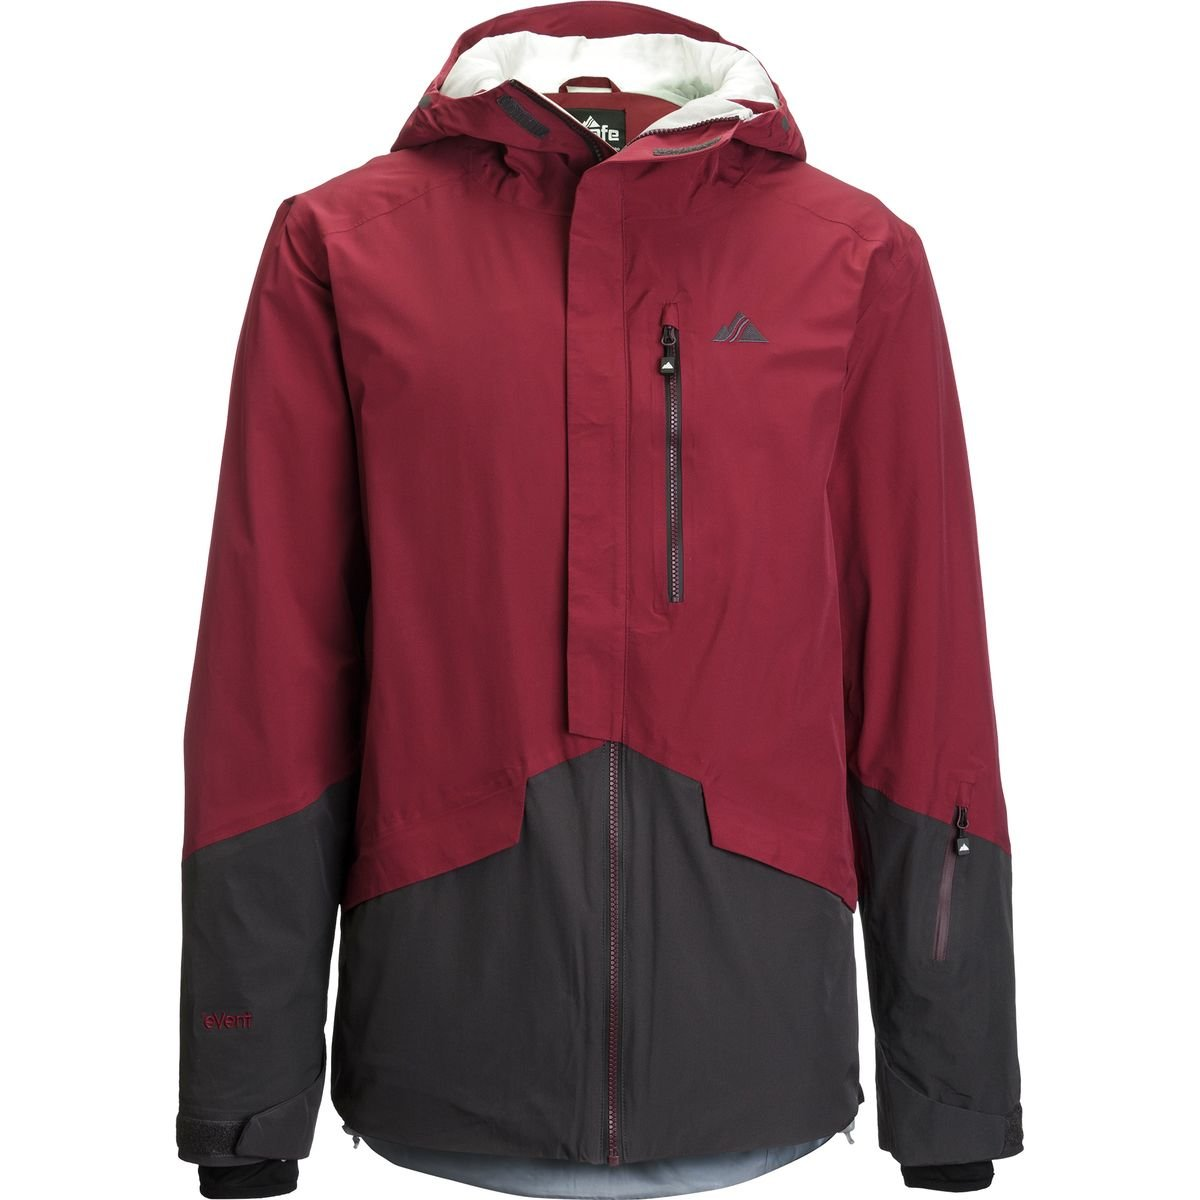 直送商品 Strafe Theo Jacket Zinfandel – Men 's Pirate B01M30C69N Zinfandel Black/ Pirate Black Medium, SHOP PINK京都:7051882c --- cygne.mdxdemo.com